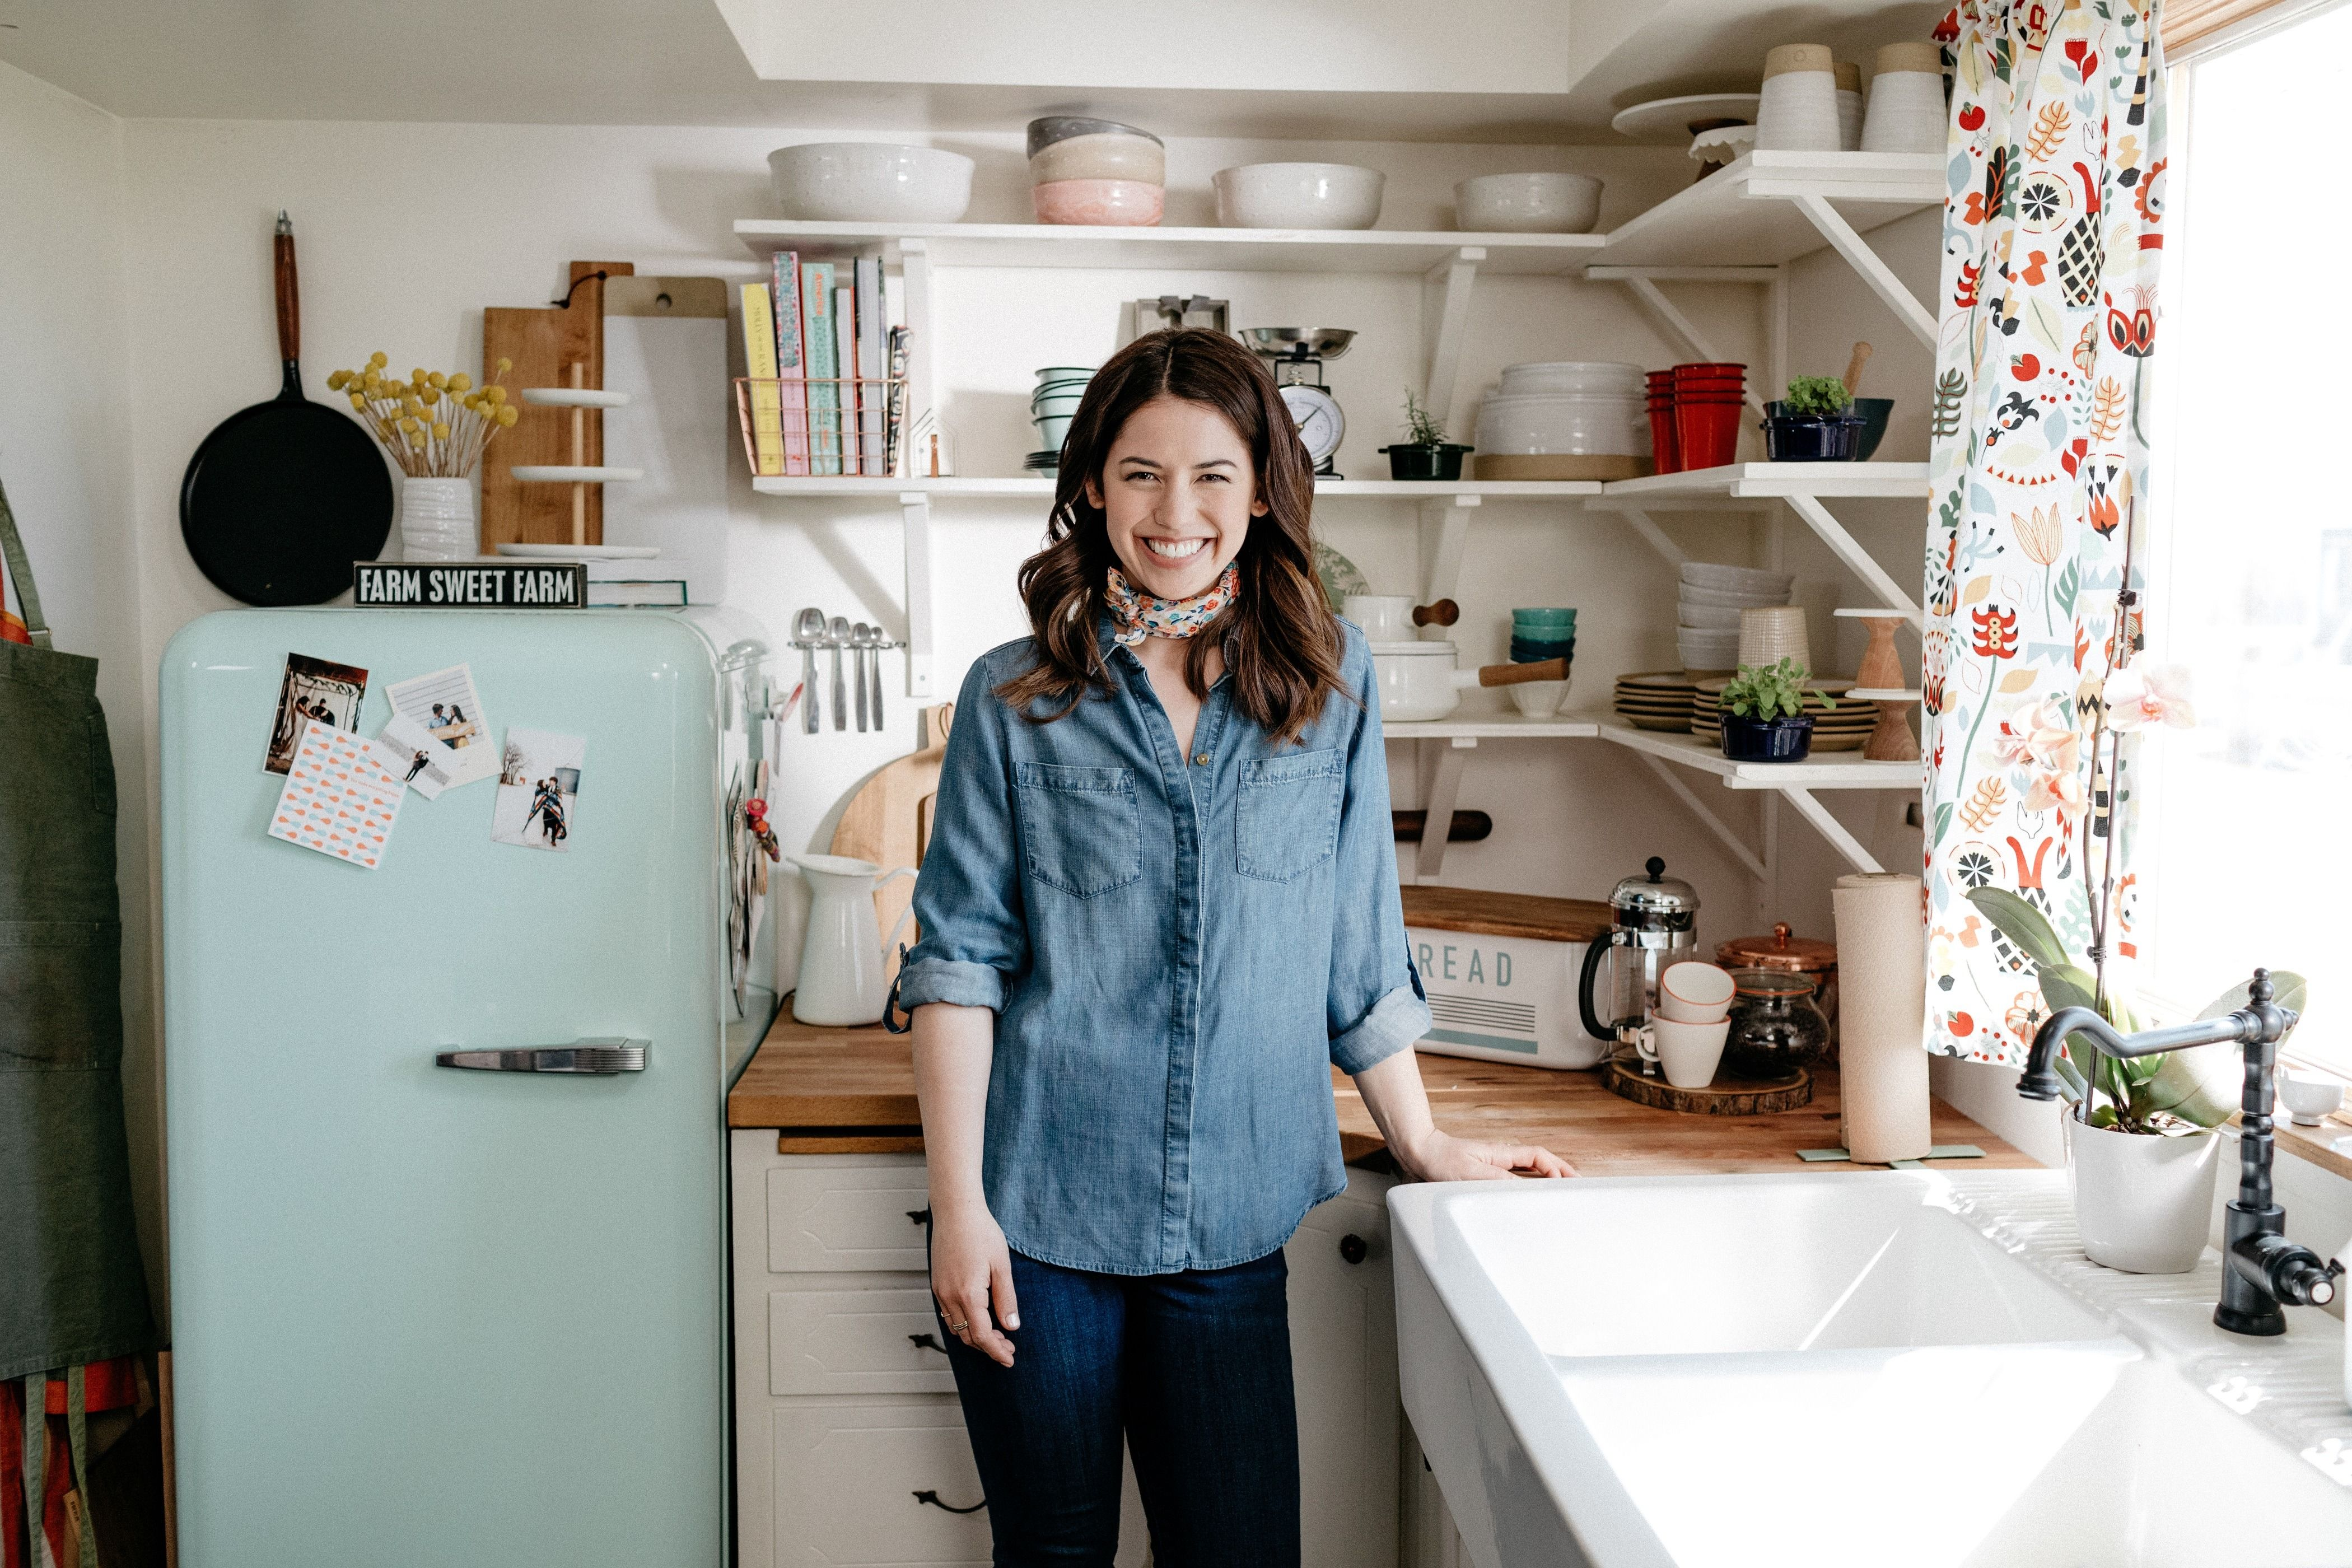 Molly Yeh Scores New Food Network Show – The Forward